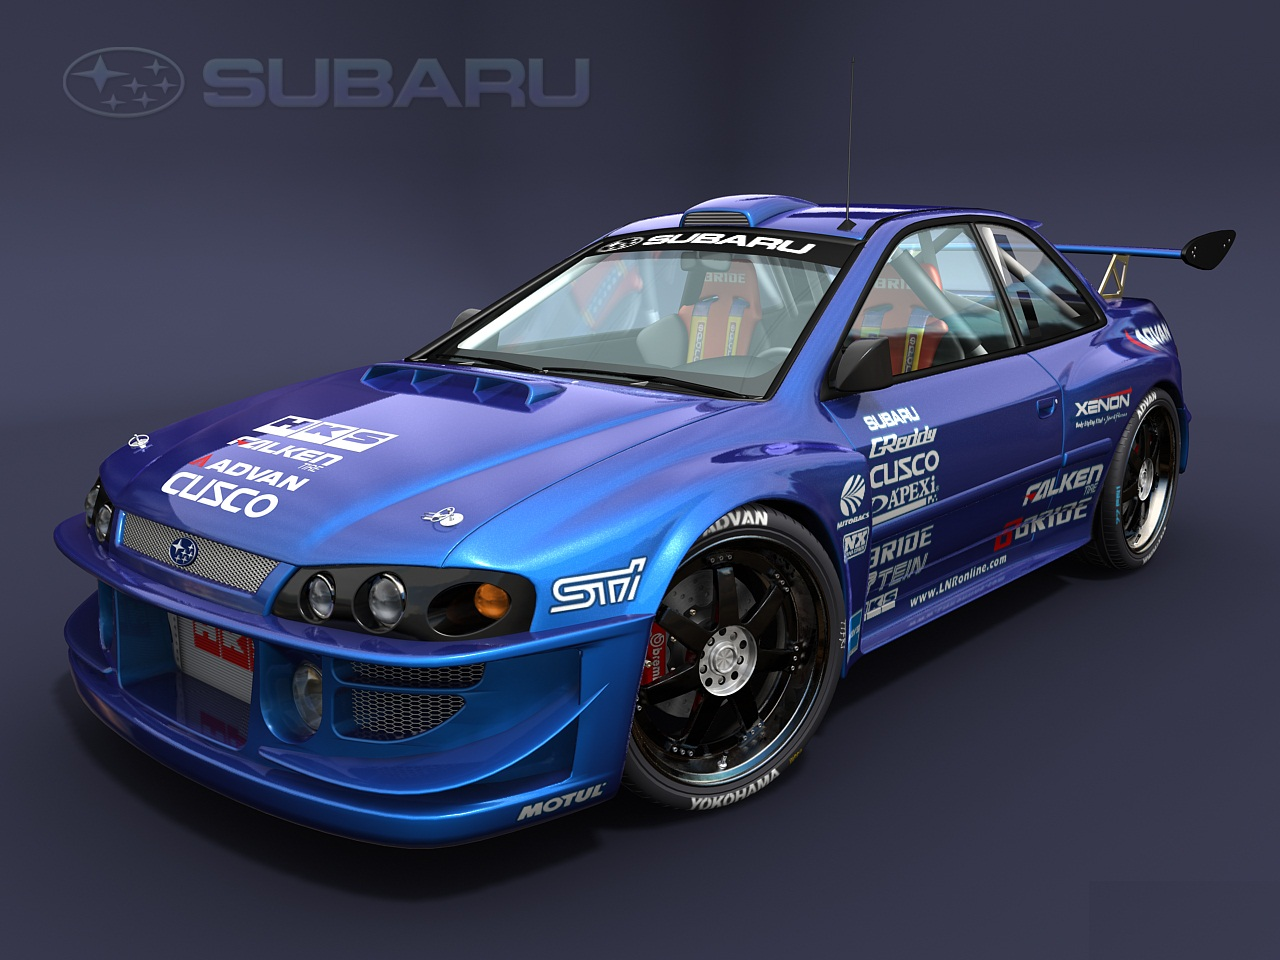 Subaru Impreza-HD Wallpapers